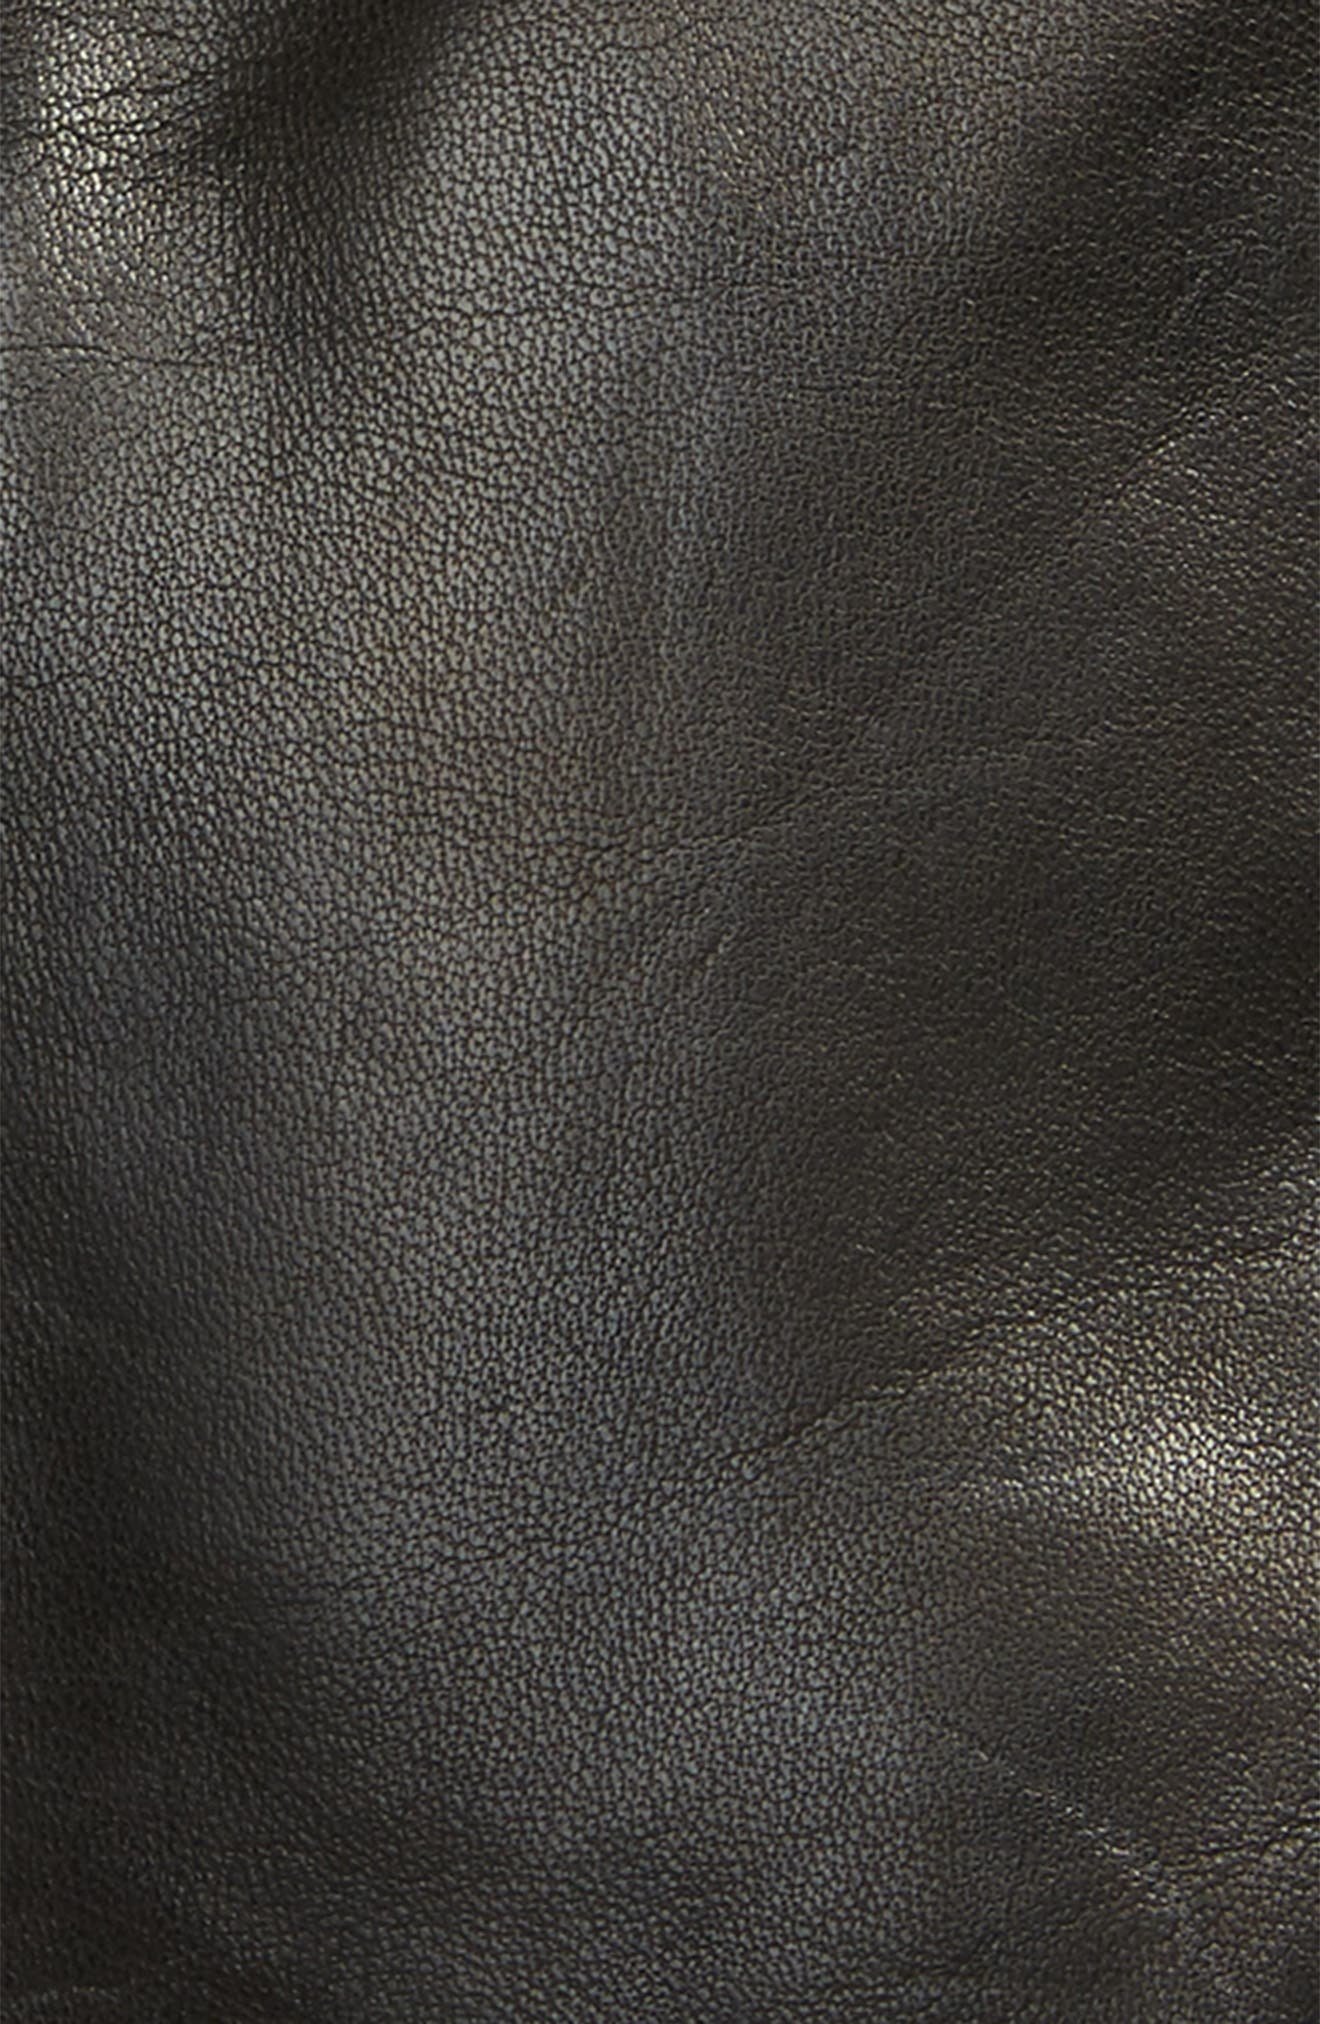 Lambskin Leather Gloves,                             Alternate thumbnail 3, color,                             001